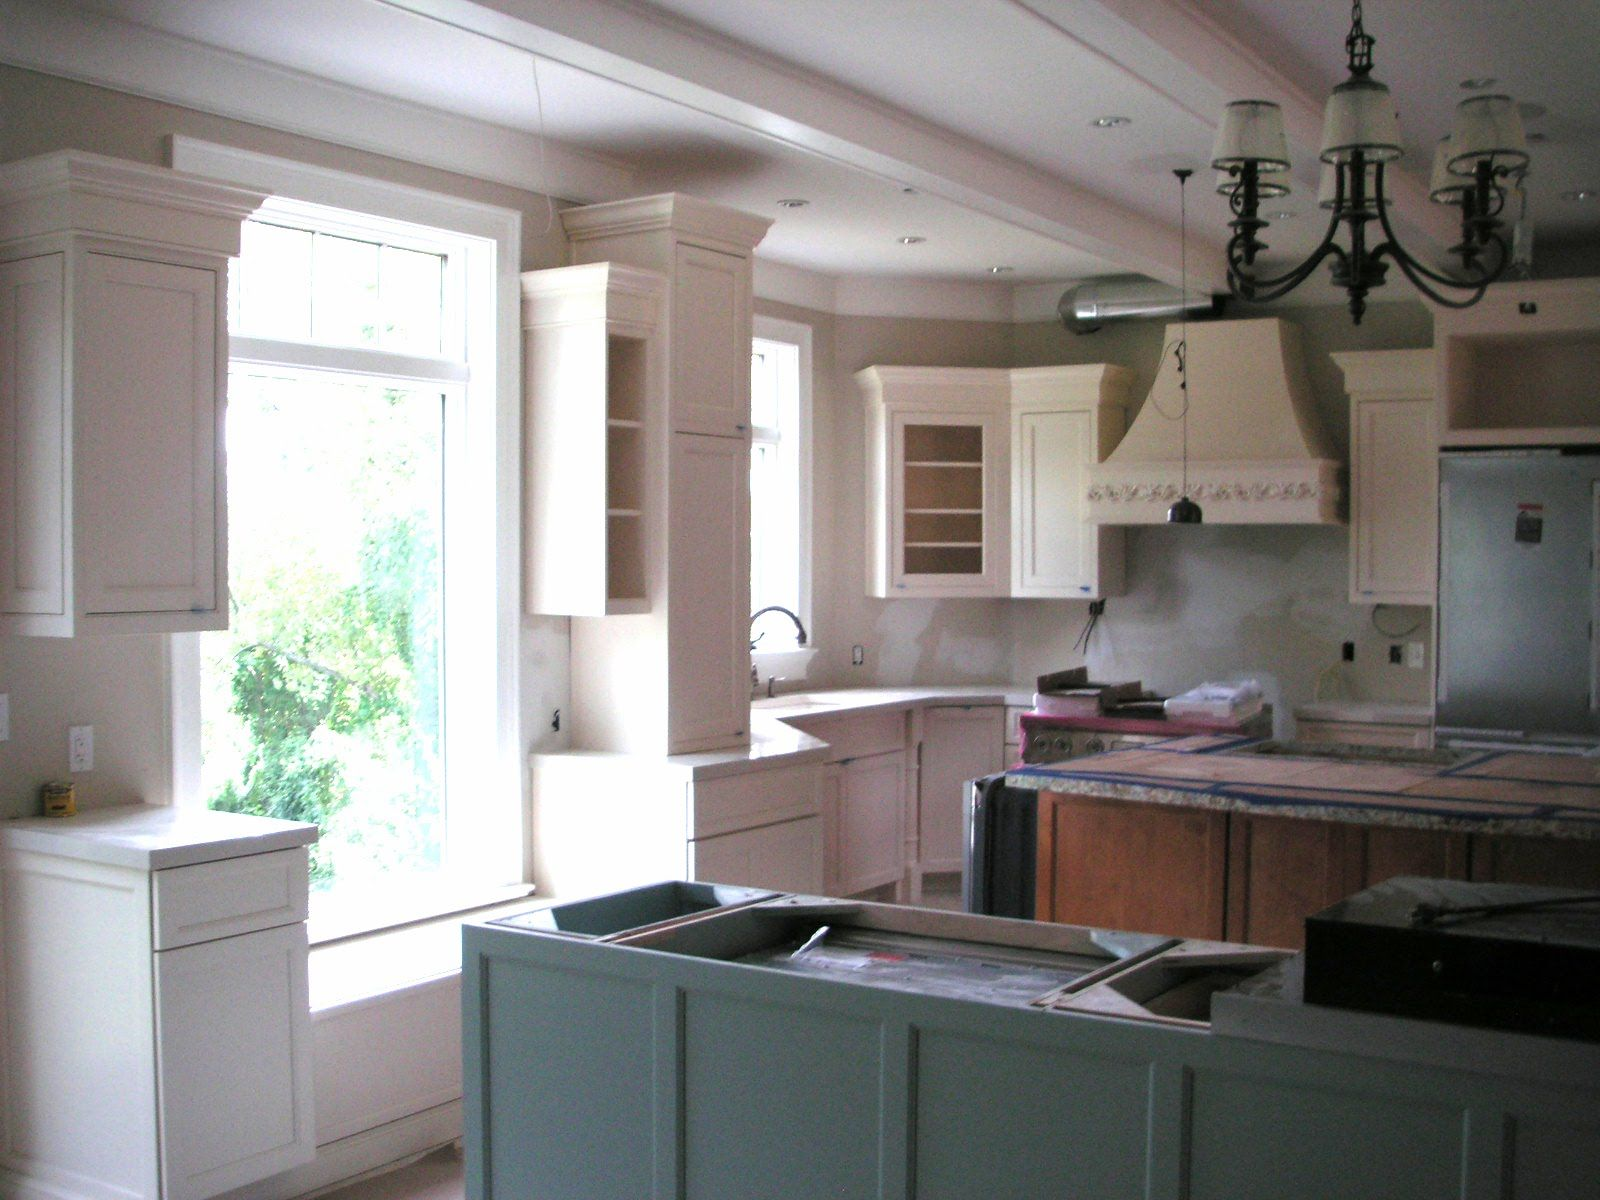 Color forte sherwin williams quietude ivory lace for Samples of painted kitchen cabinets